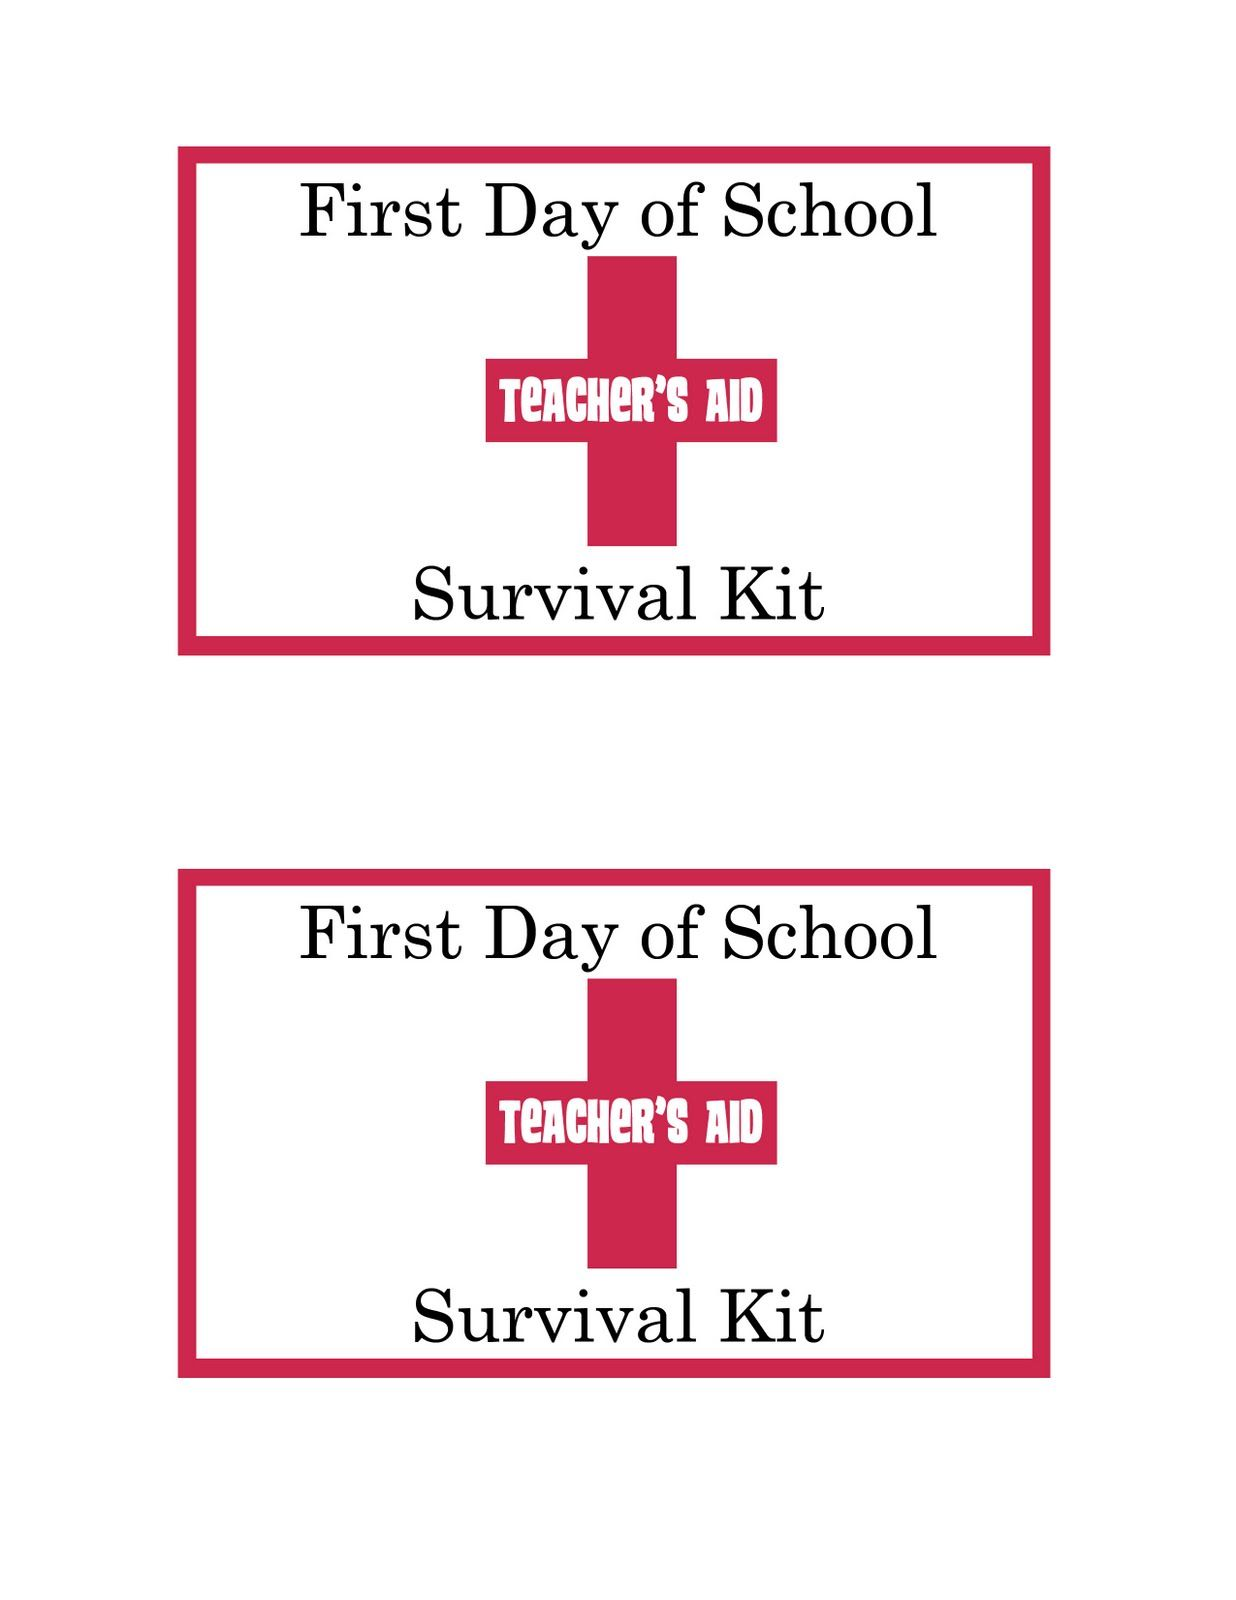 picture regarding Teacher Survival Kit Printable known as 1st Working day Survival Package-printable Appreciation Recommendations